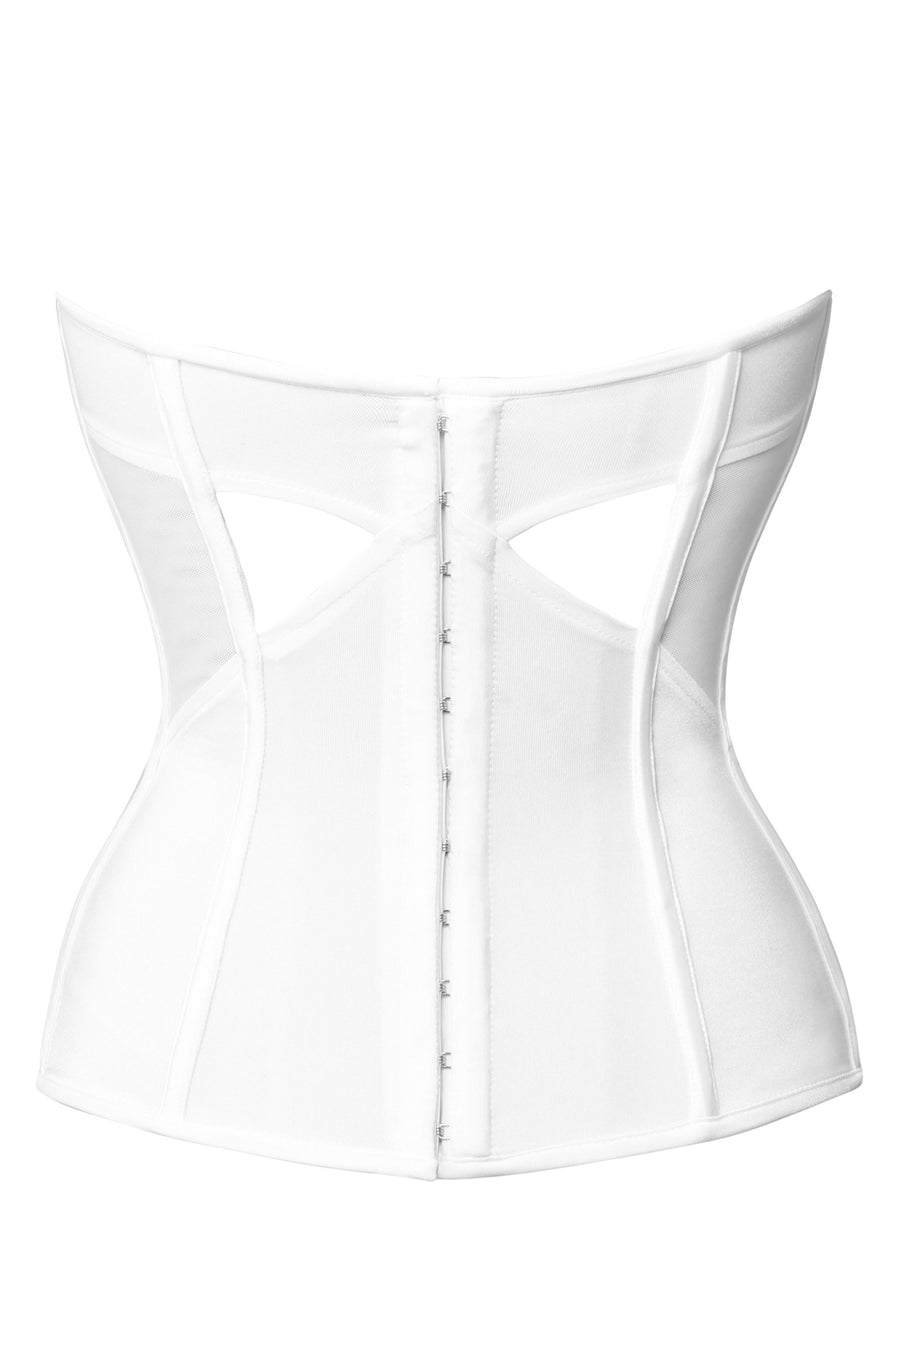 Low Back Boned Bridal Corset with Cups